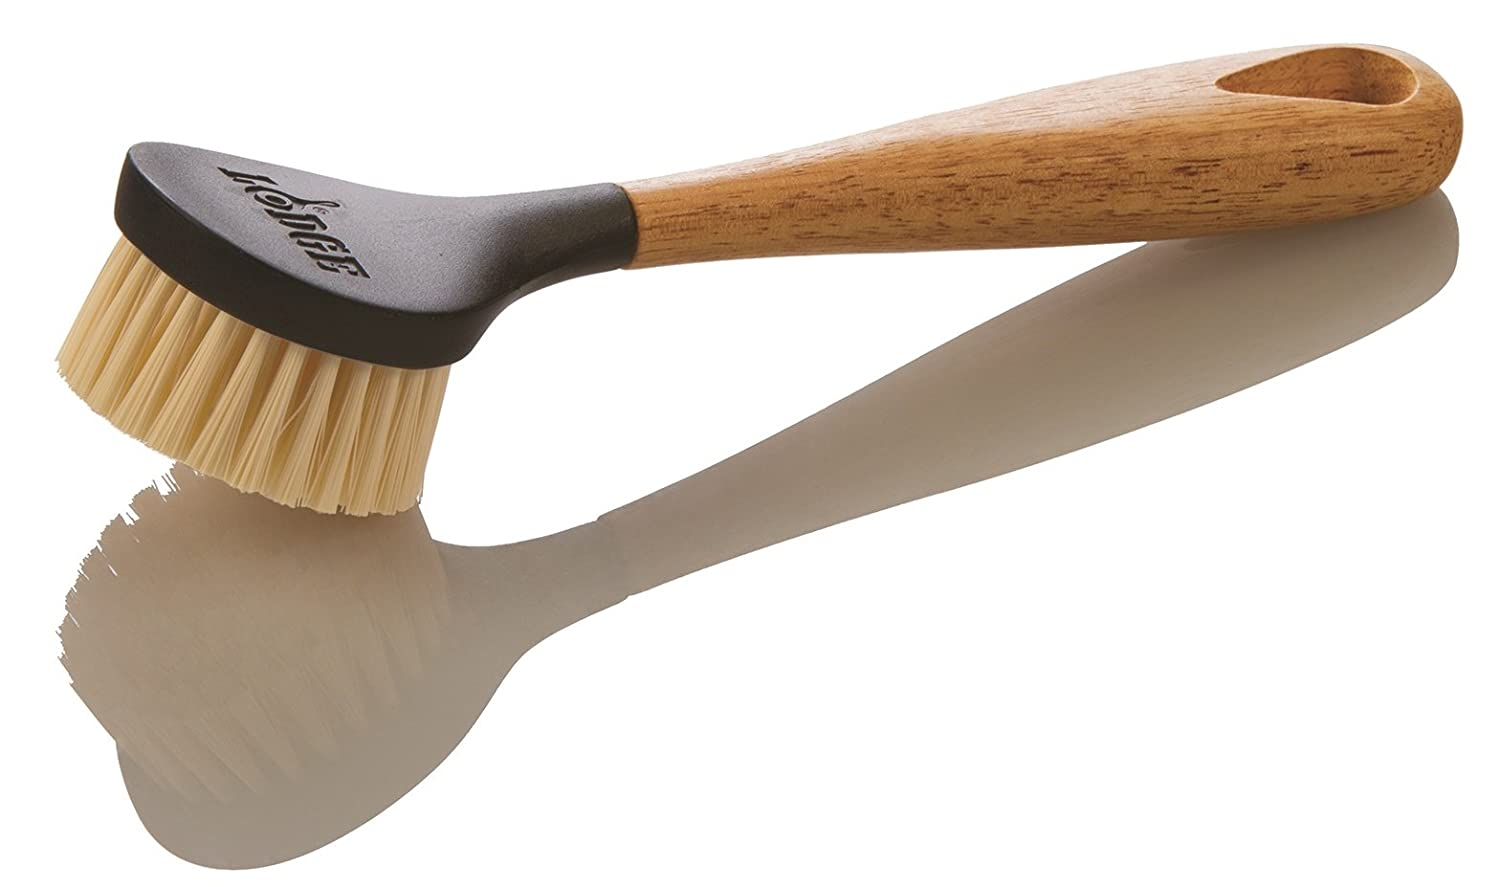 Lodge 10 Inch Scrub Brush. Cast Iron Scrub Brush with Ergonomic Design and Dense Bristles. SCRBRSH